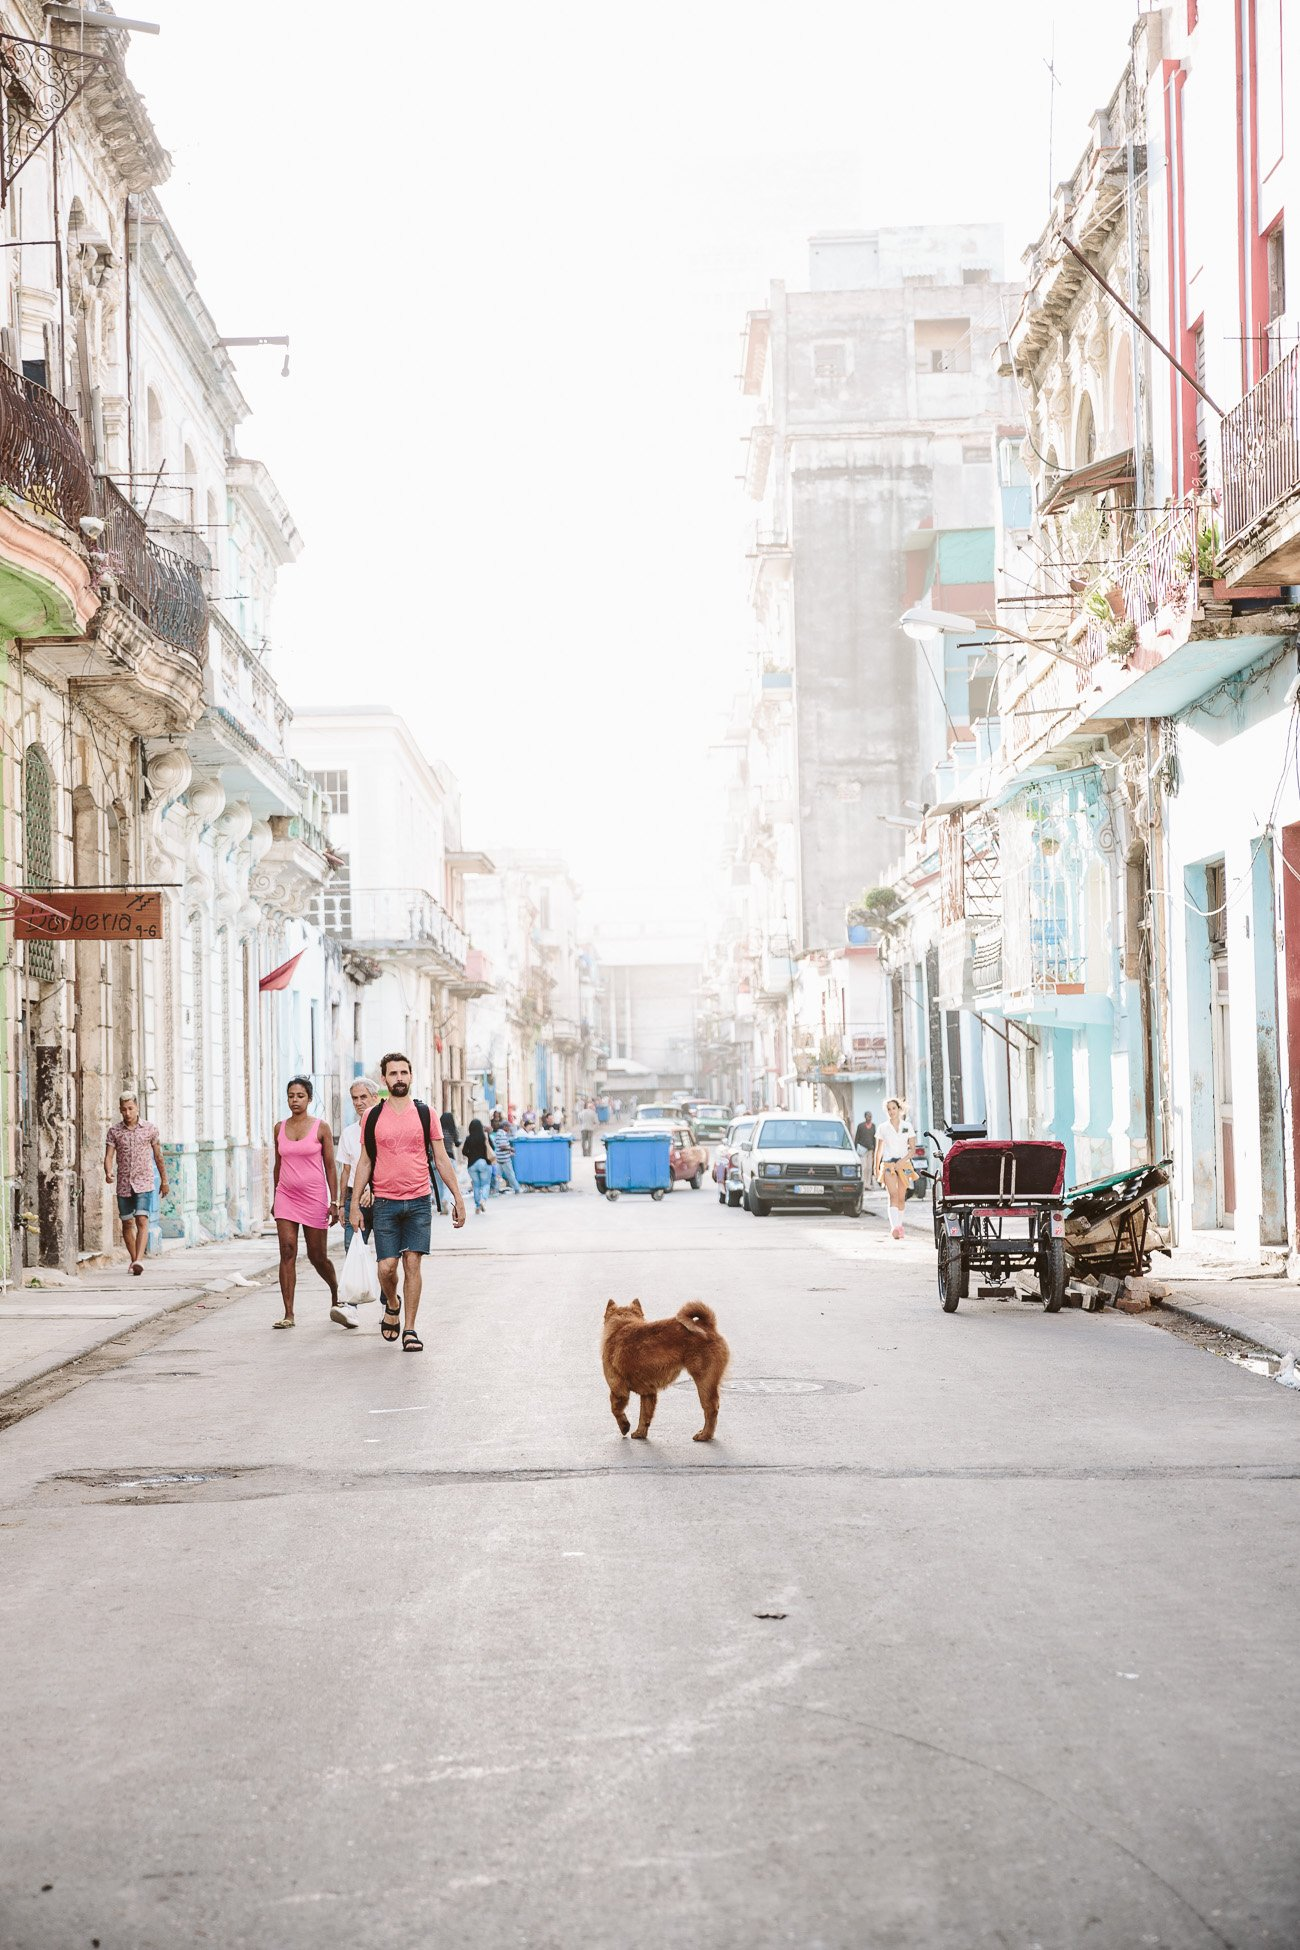 A dog stands in a street in Havana Cuba